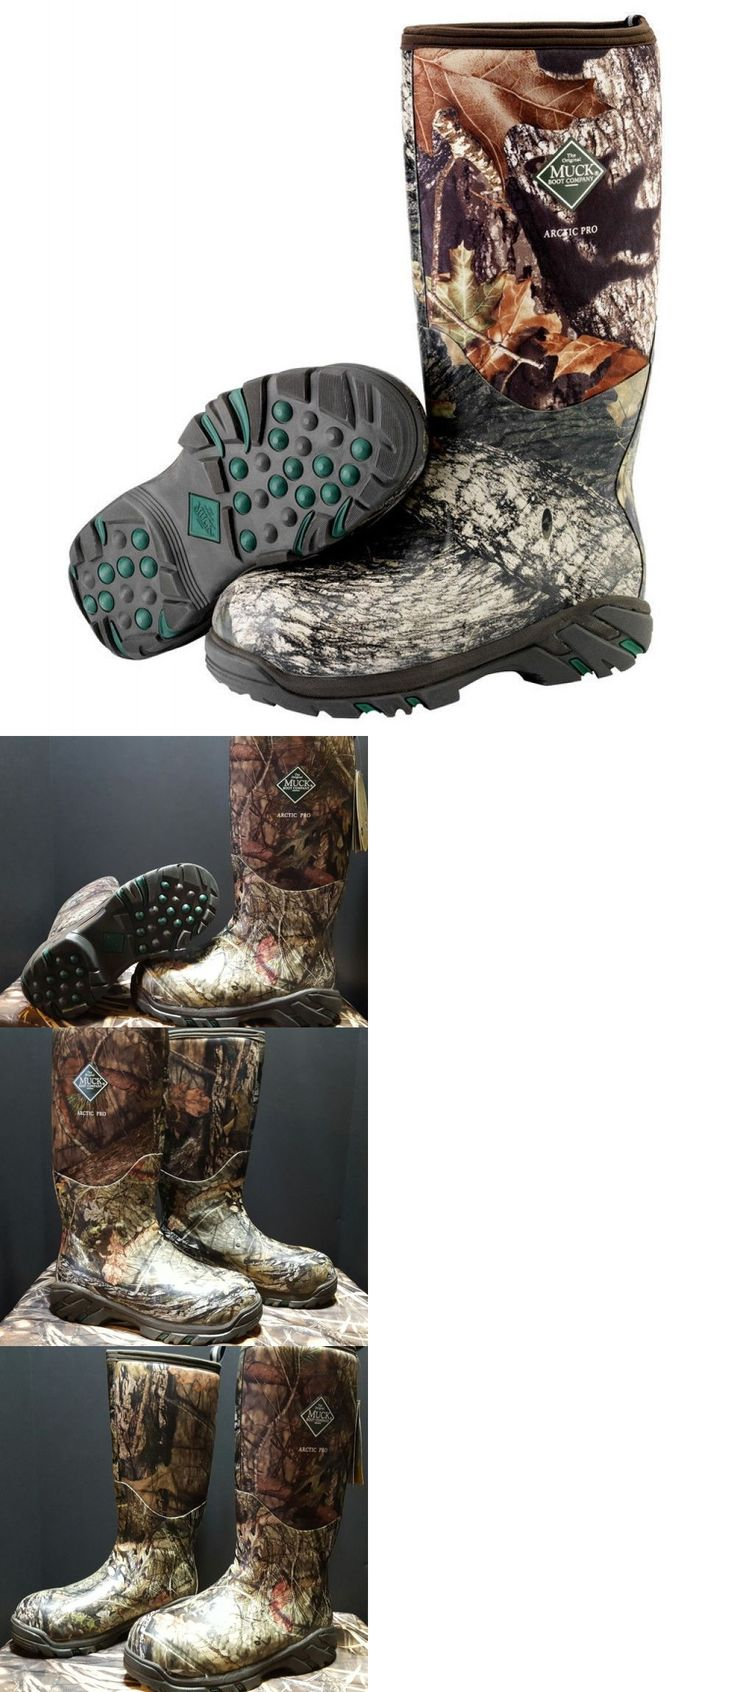 17 best ideas about Men's Muck Boots on Pinterest | Hunting boots ...